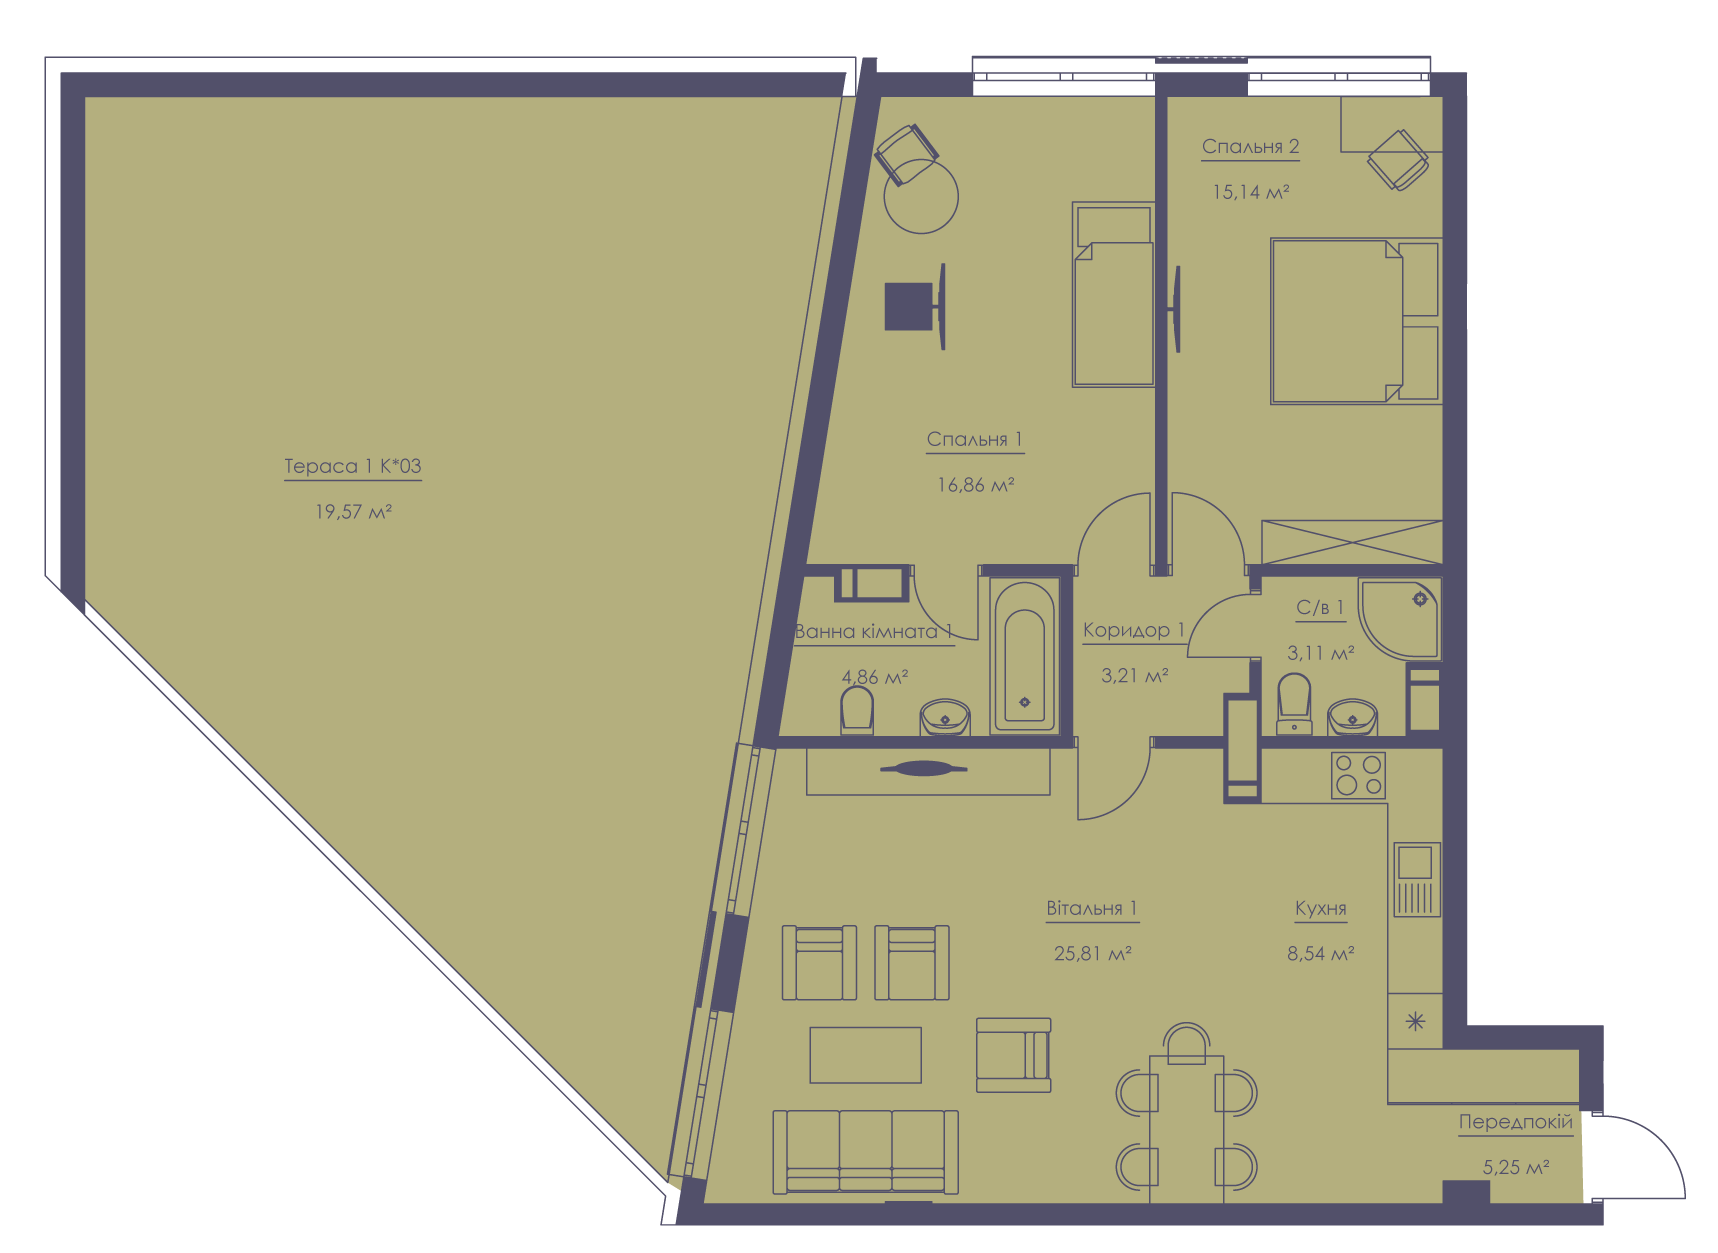 Apartment layout KV_30_1.2n_1_1_7-1